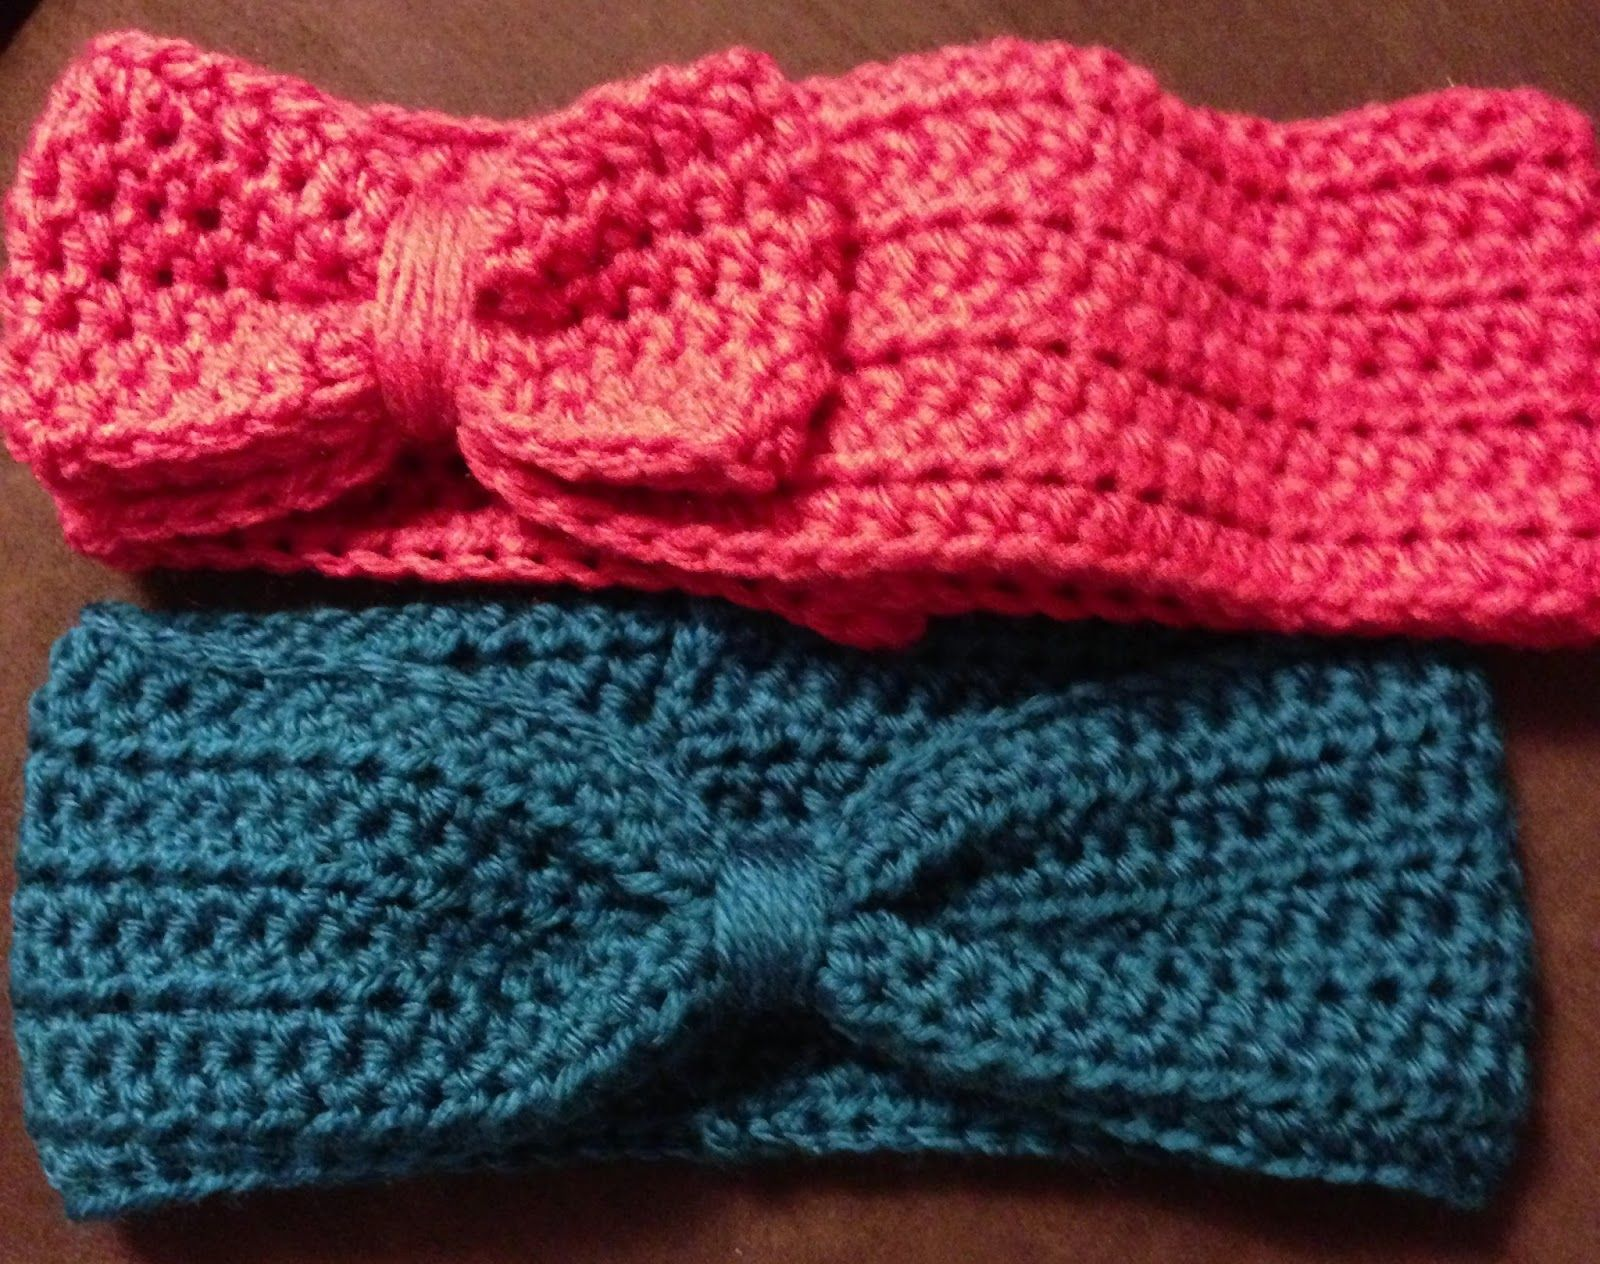 For those of you who know how to crochet, I decided to just post the ...